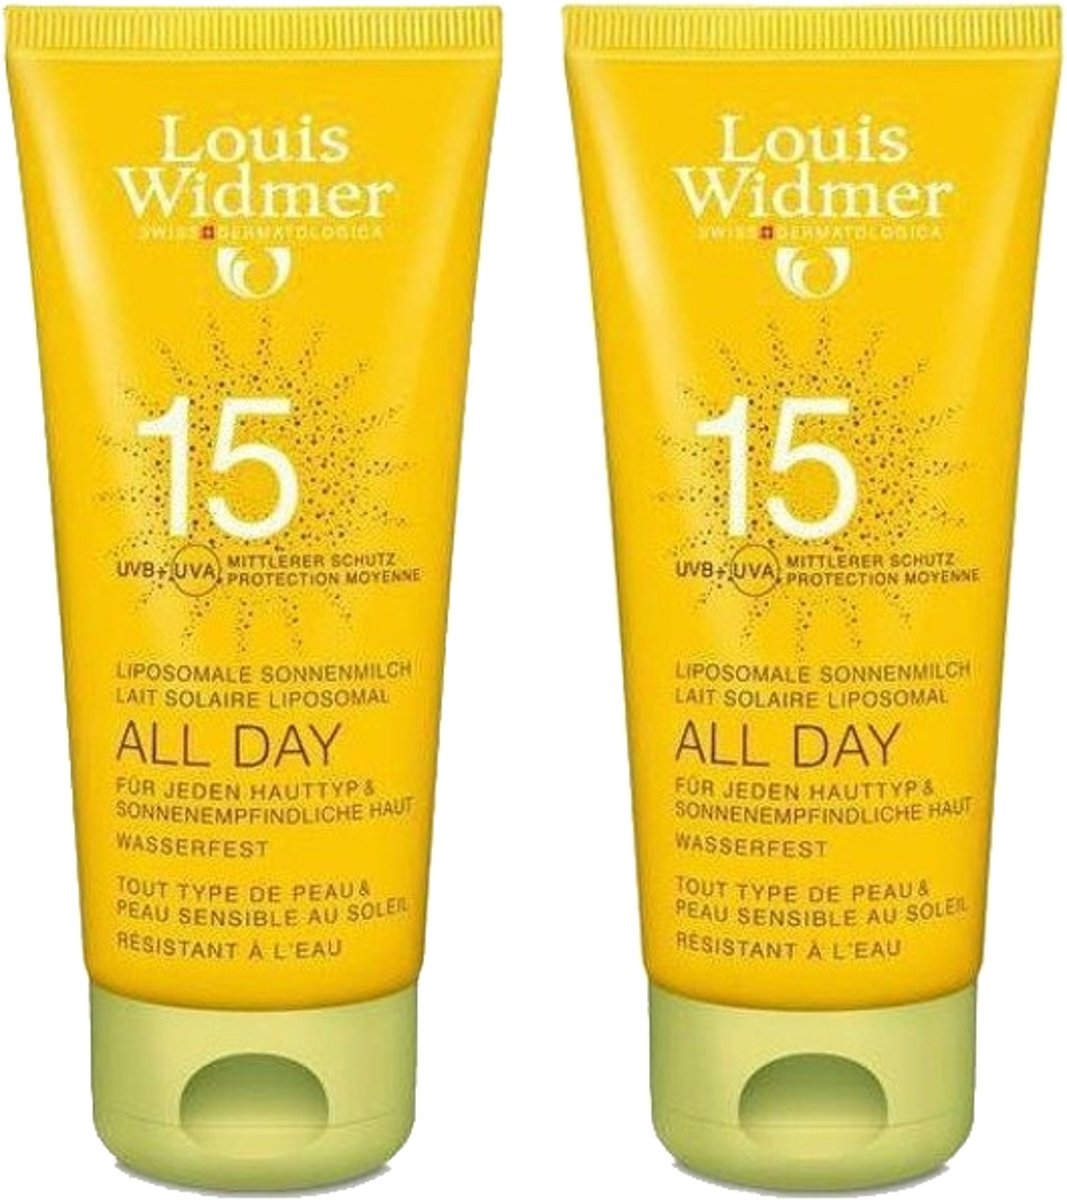 Louis Widmer All Day Duo Zonder parfum Zonnemelk 2 x 100 ml